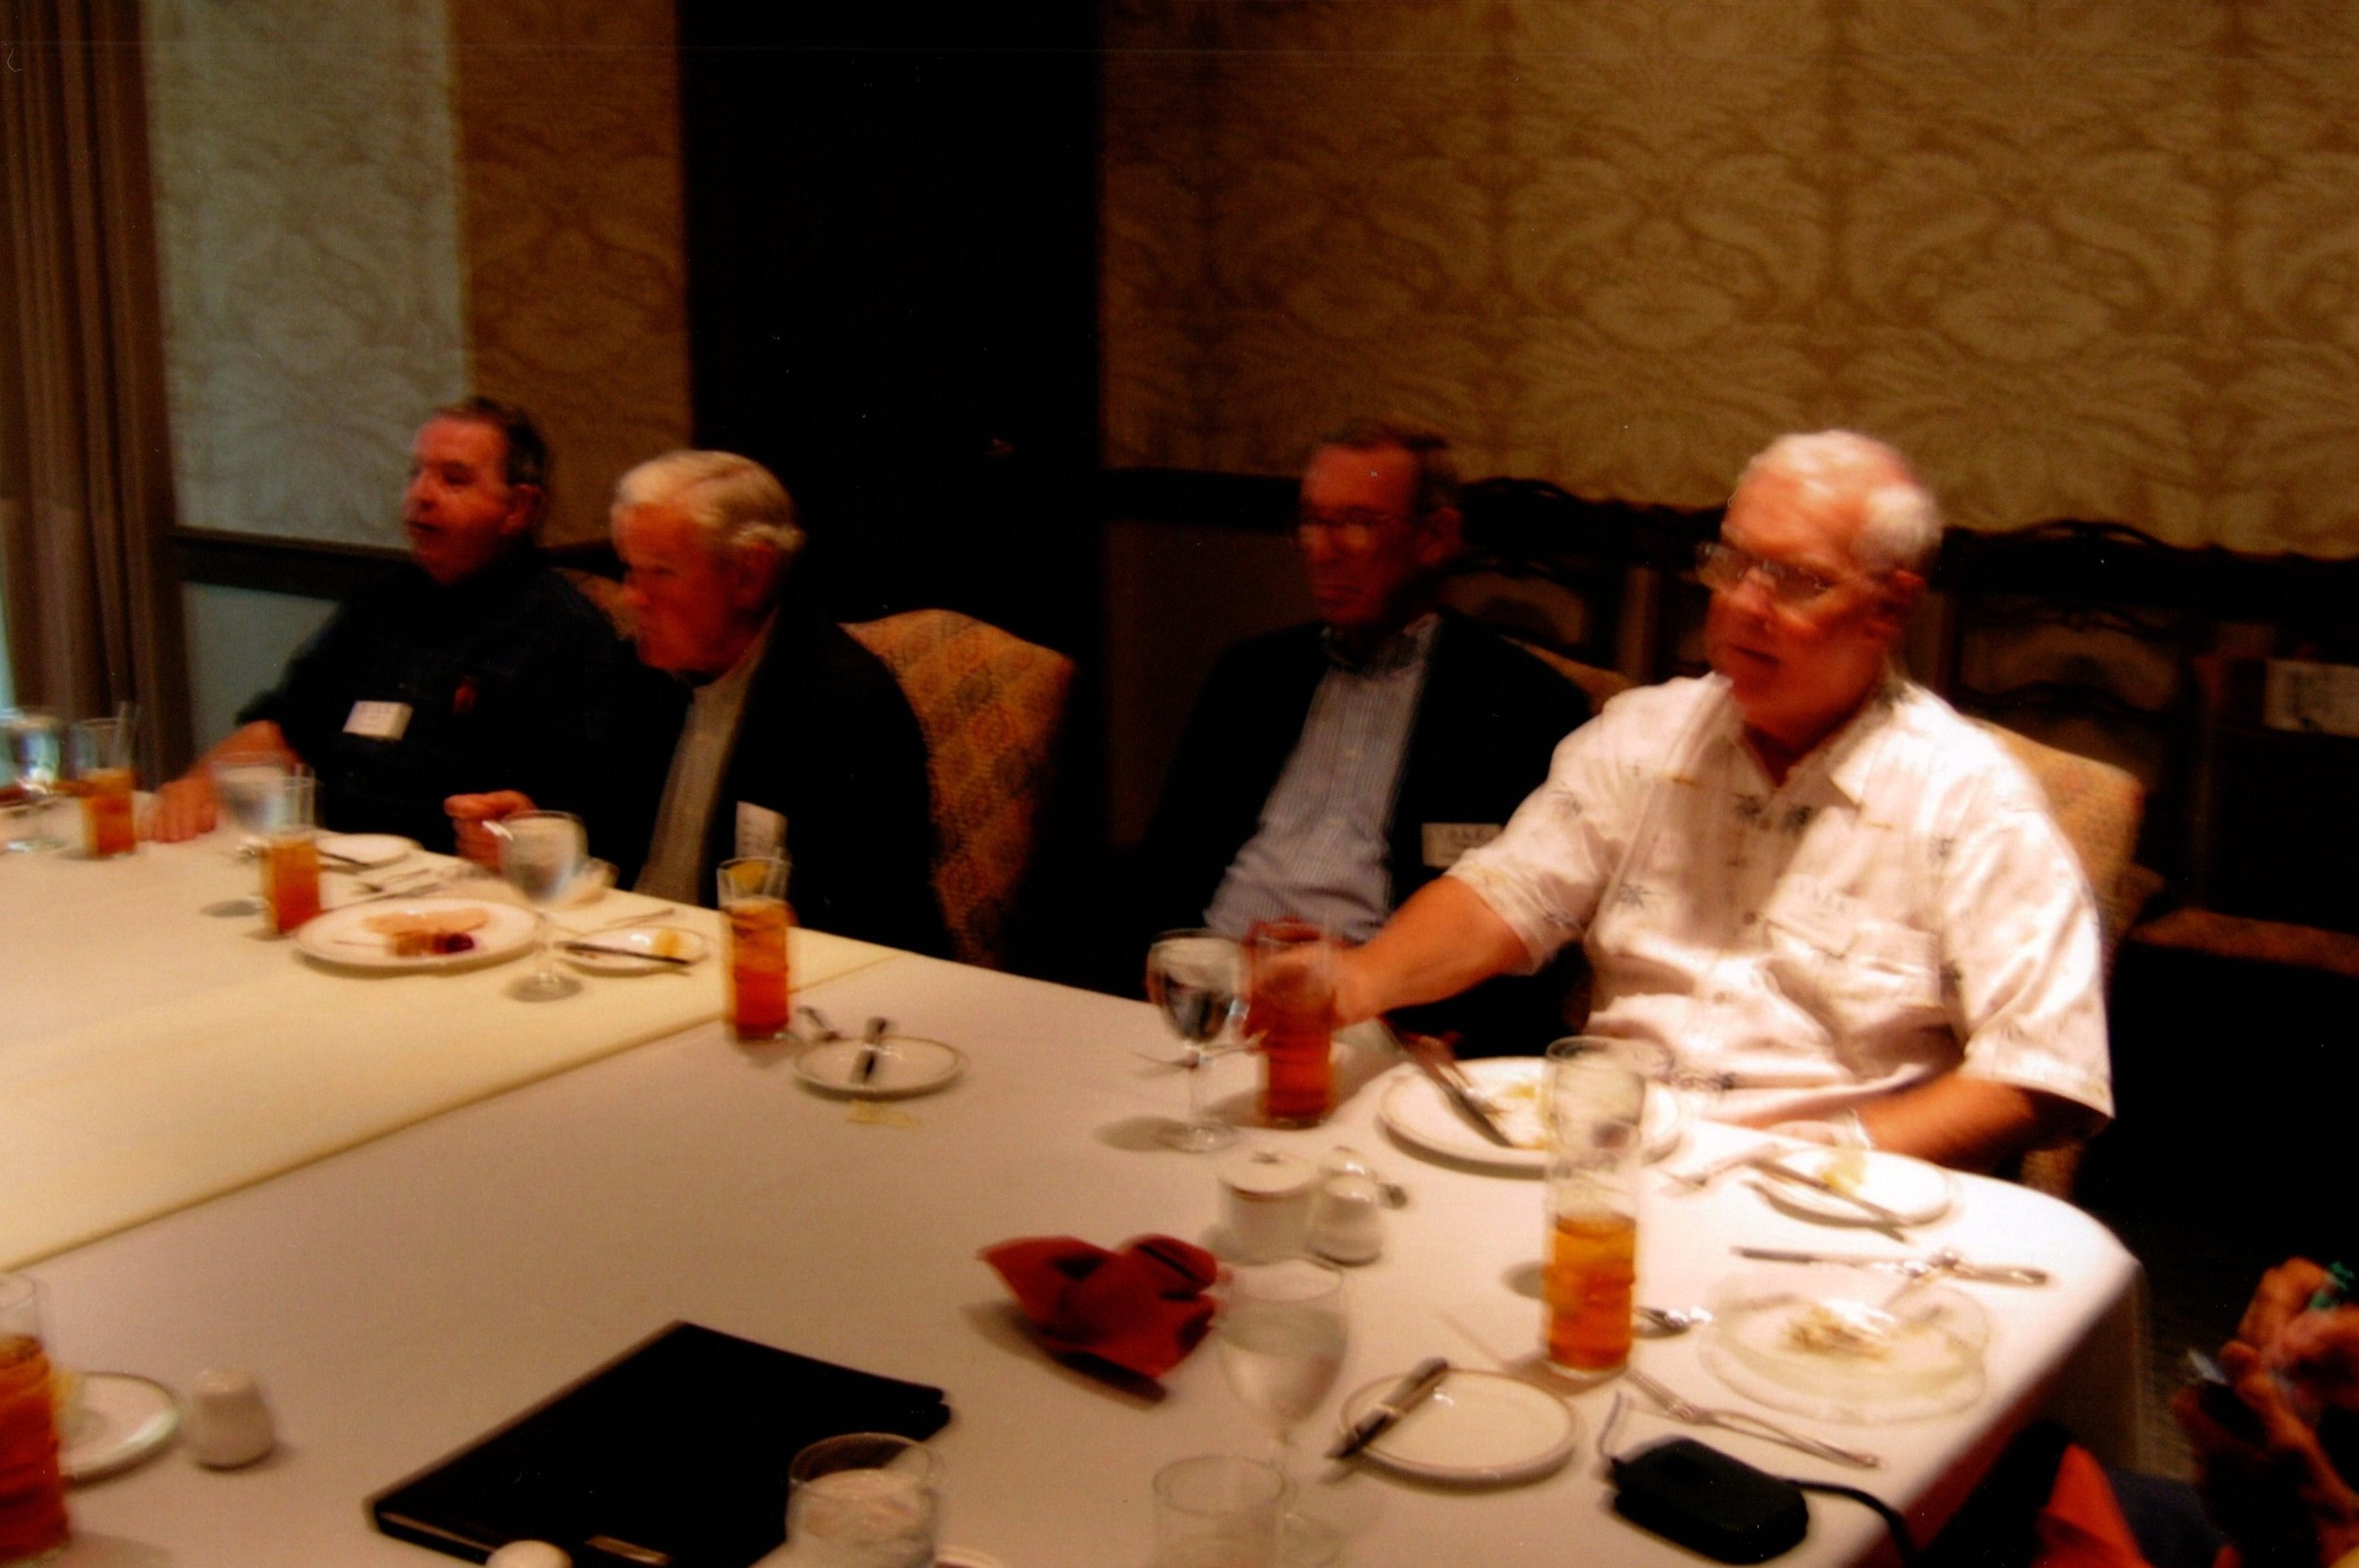 4_14_2005 - SEMI-ANNUAL MEETING OF TRUSTEES 7.jpg